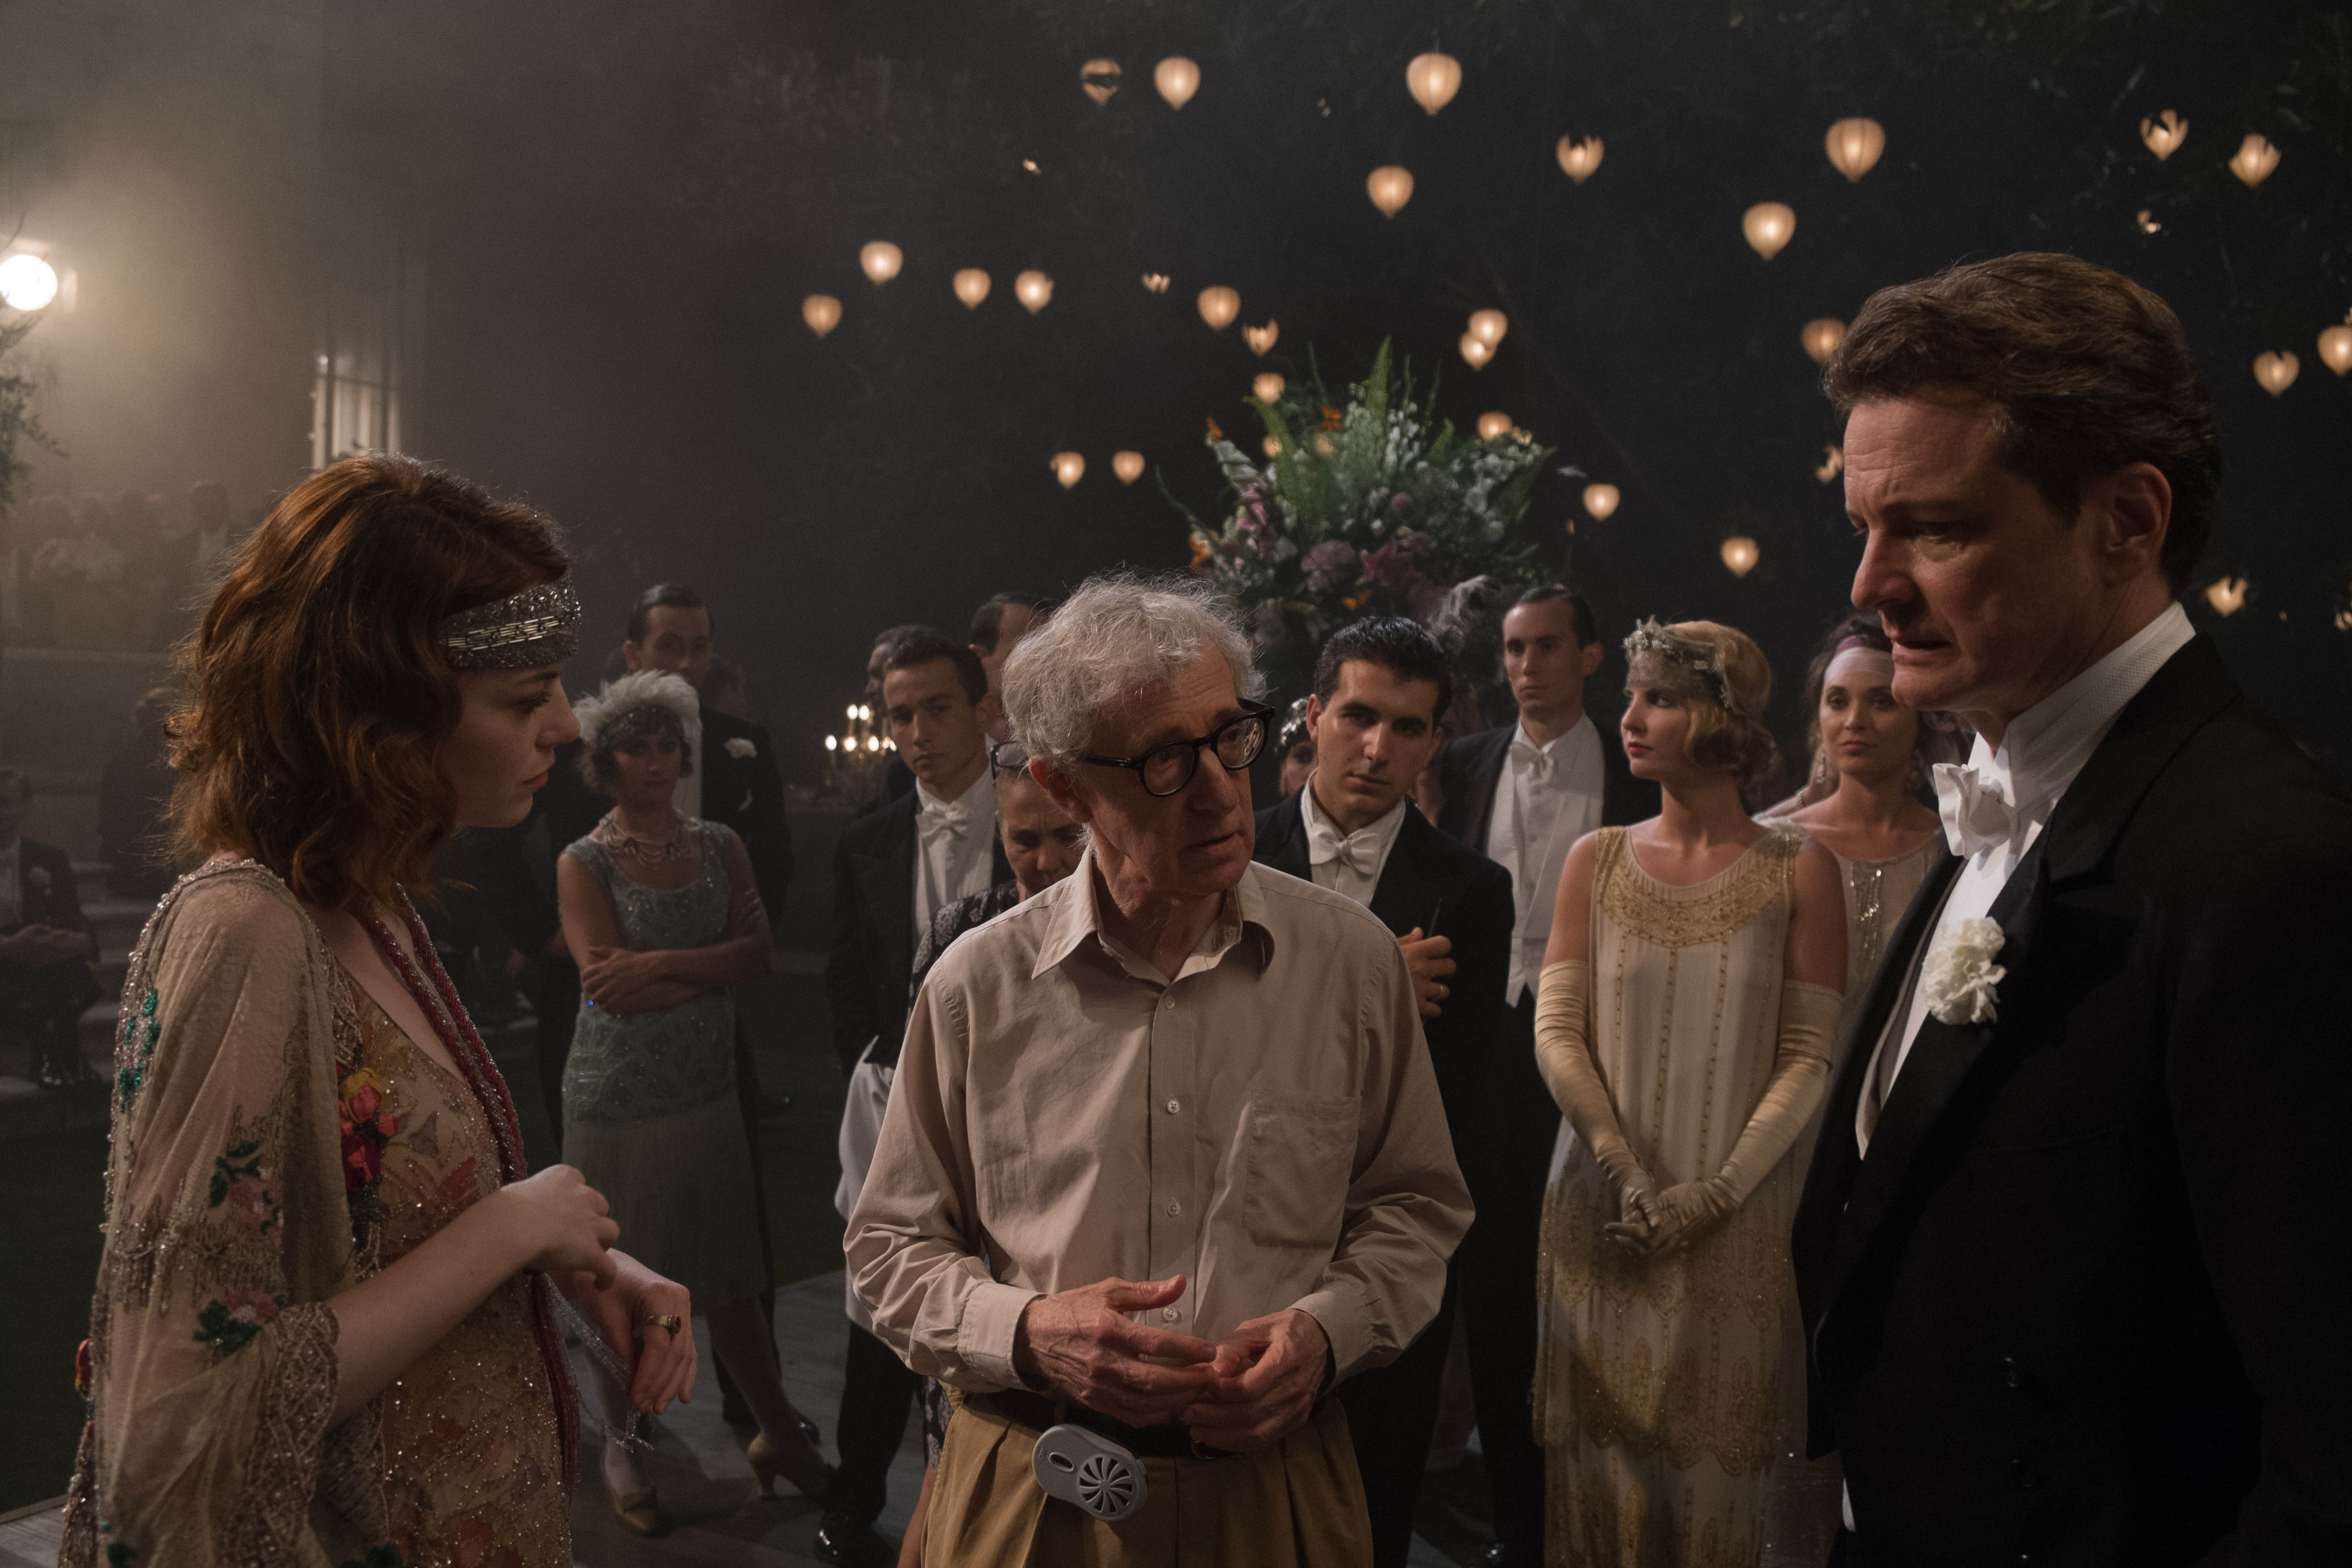 magic-in-the-moonlight-woody-allen-emma-stone-colin-firth.jpg